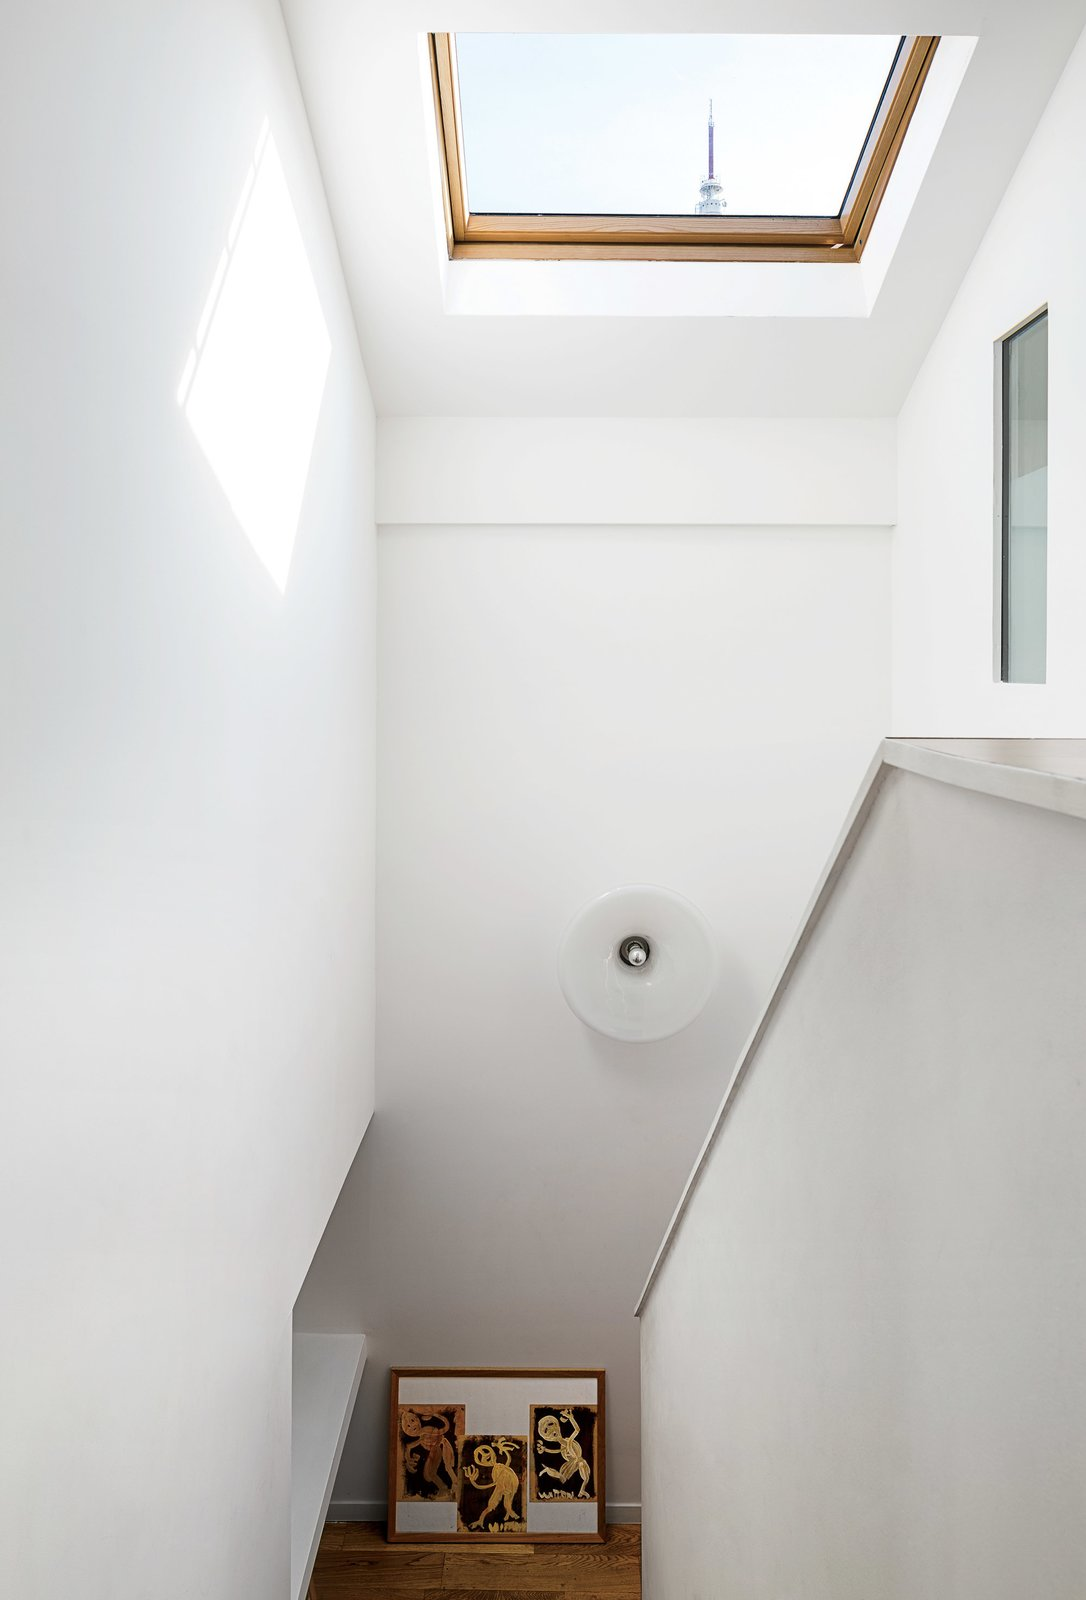 """The antenna of Claude Vasconi's TDF television tower is visible through the Velux skylight architects Caroline Djuric and Mirco Tardio added to a family house in France. """"It's very French, very angular,"""" Djuric says of the renovation. The light fixture was found at a brocante, or vintage market.  Photo 2 of 7 in Now That's How You Double Your Square Footage"""